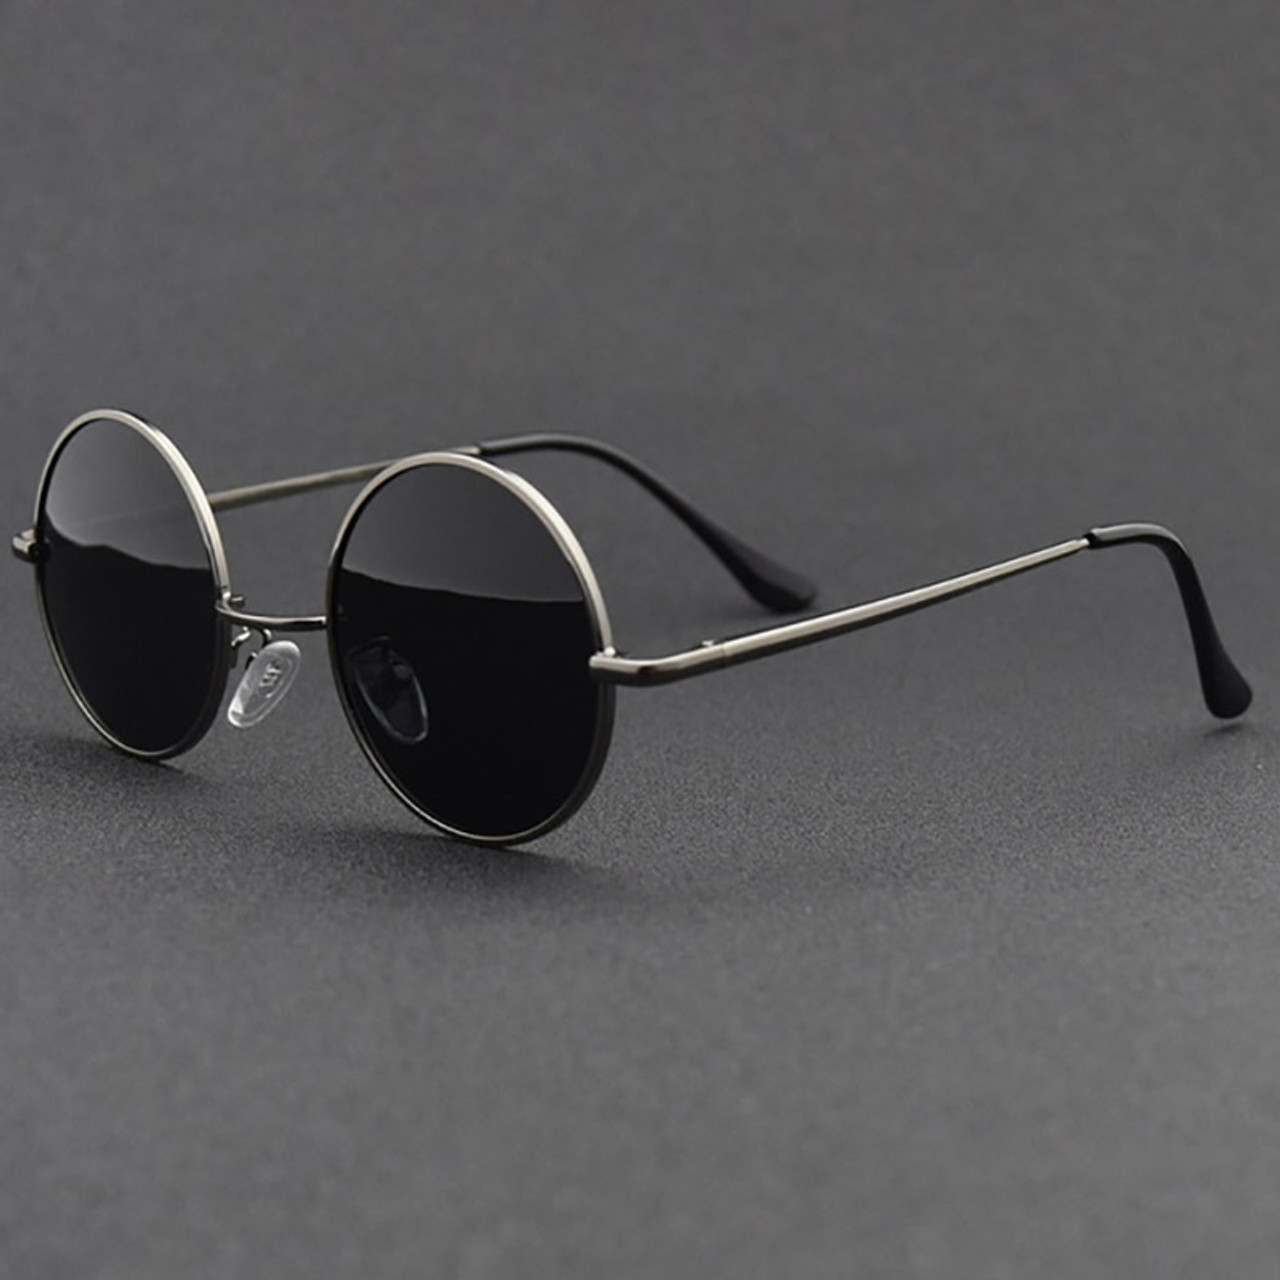 08633a638e77 ... Retro Classic Vintage Round Polarized Sunglasses Men Brand Designer Sun Glasses  Women Metal Frame Black lens ...